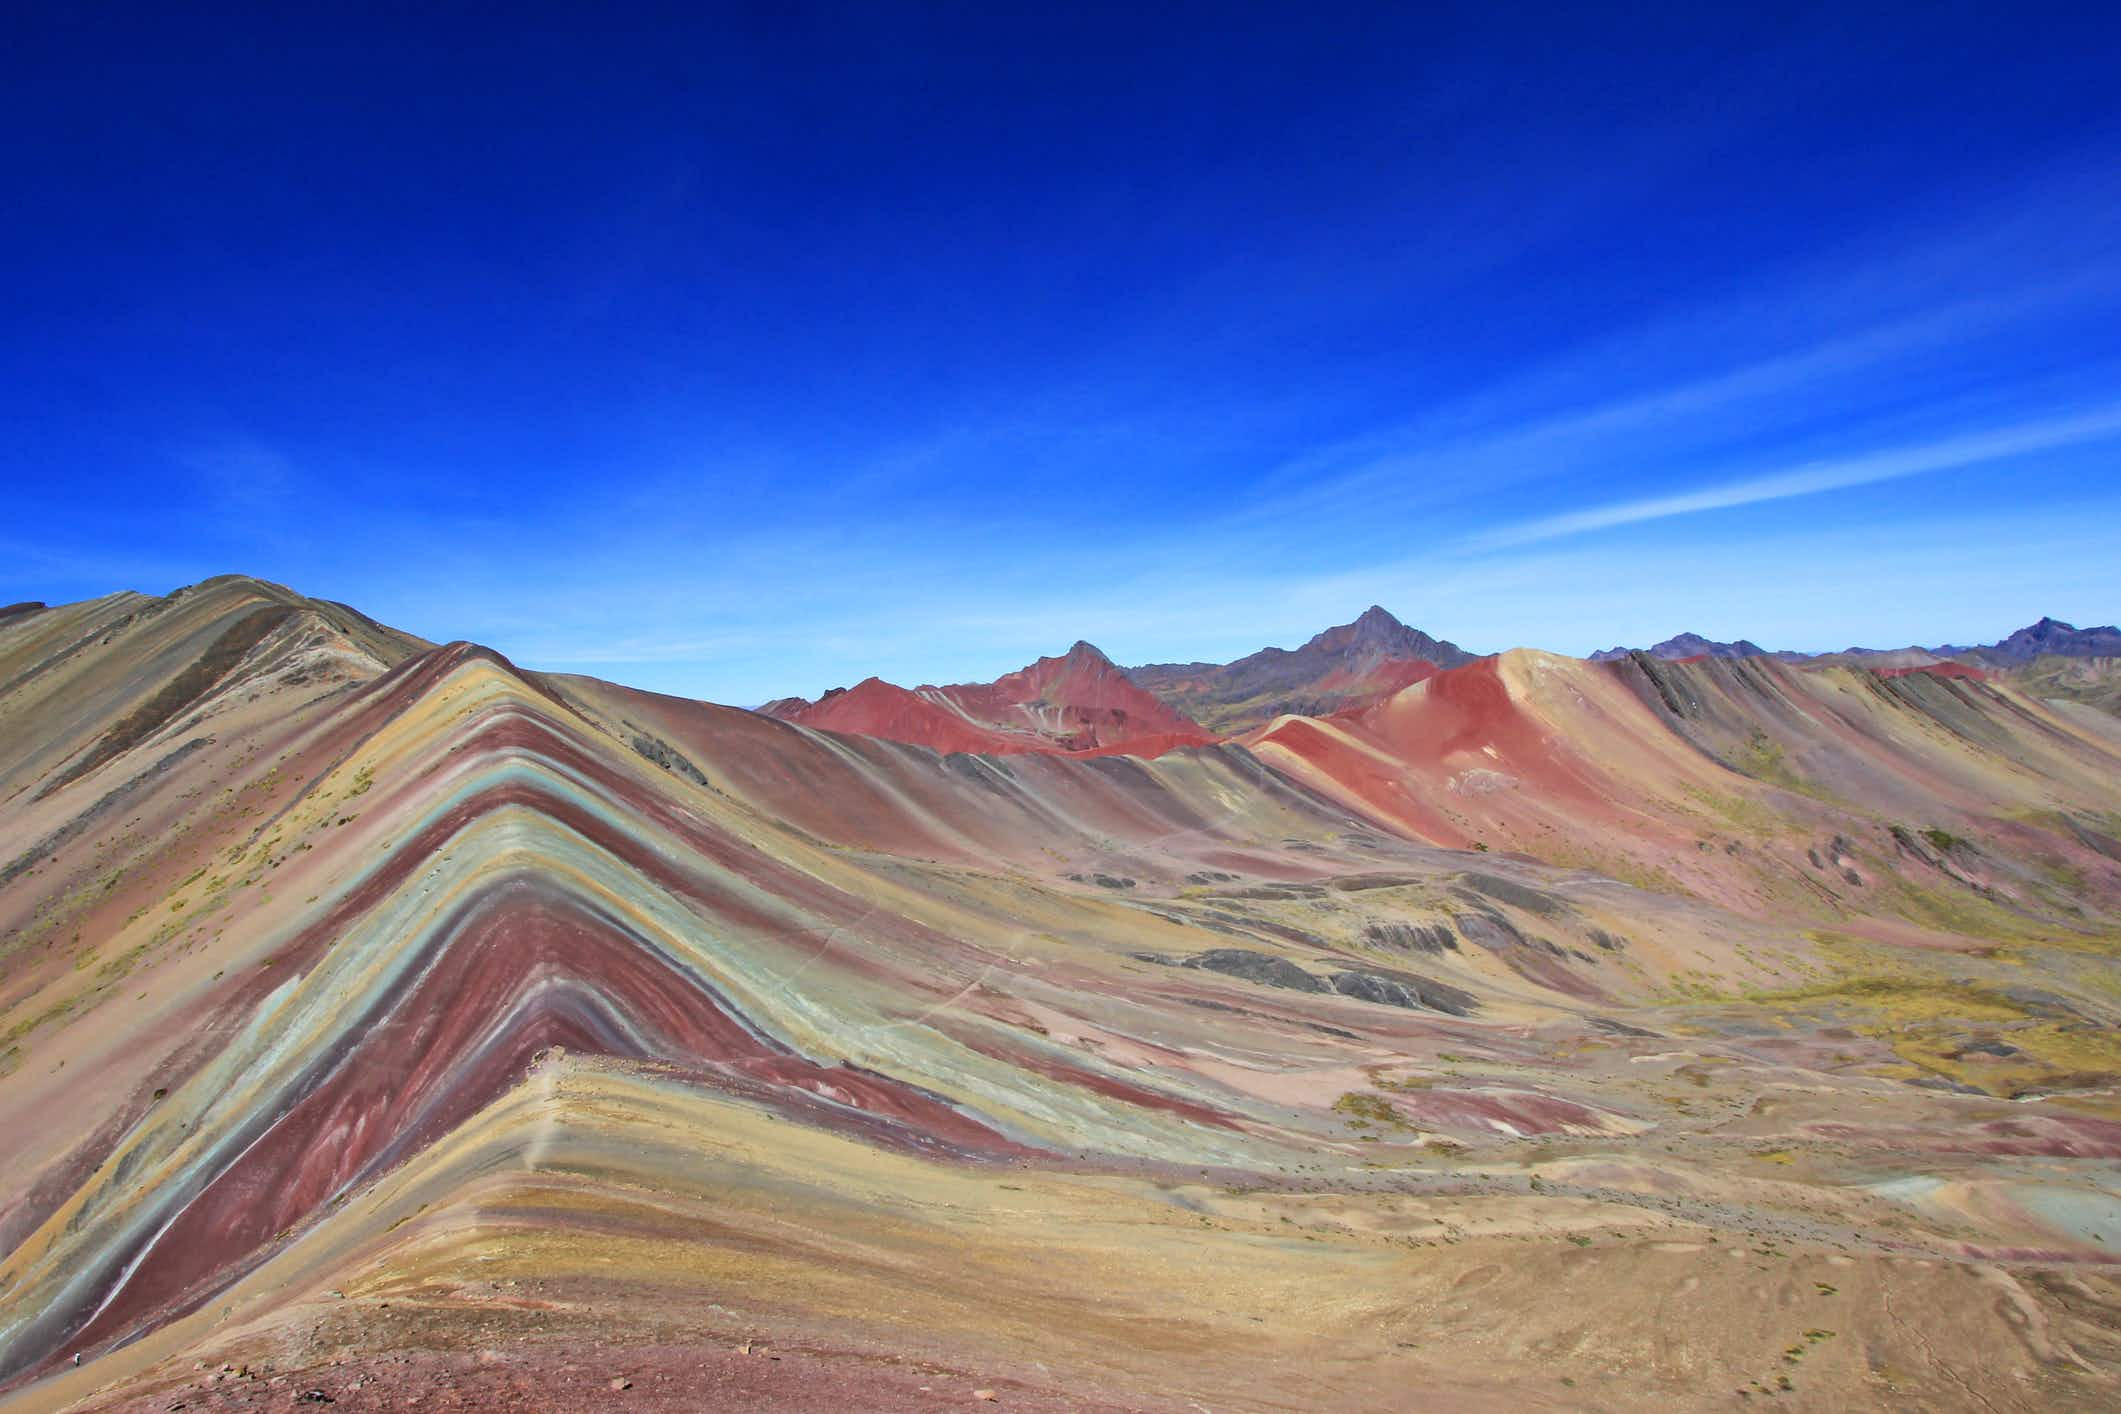 Peru looks to build sustainable tourism at  its stunning Rainbow Mountain